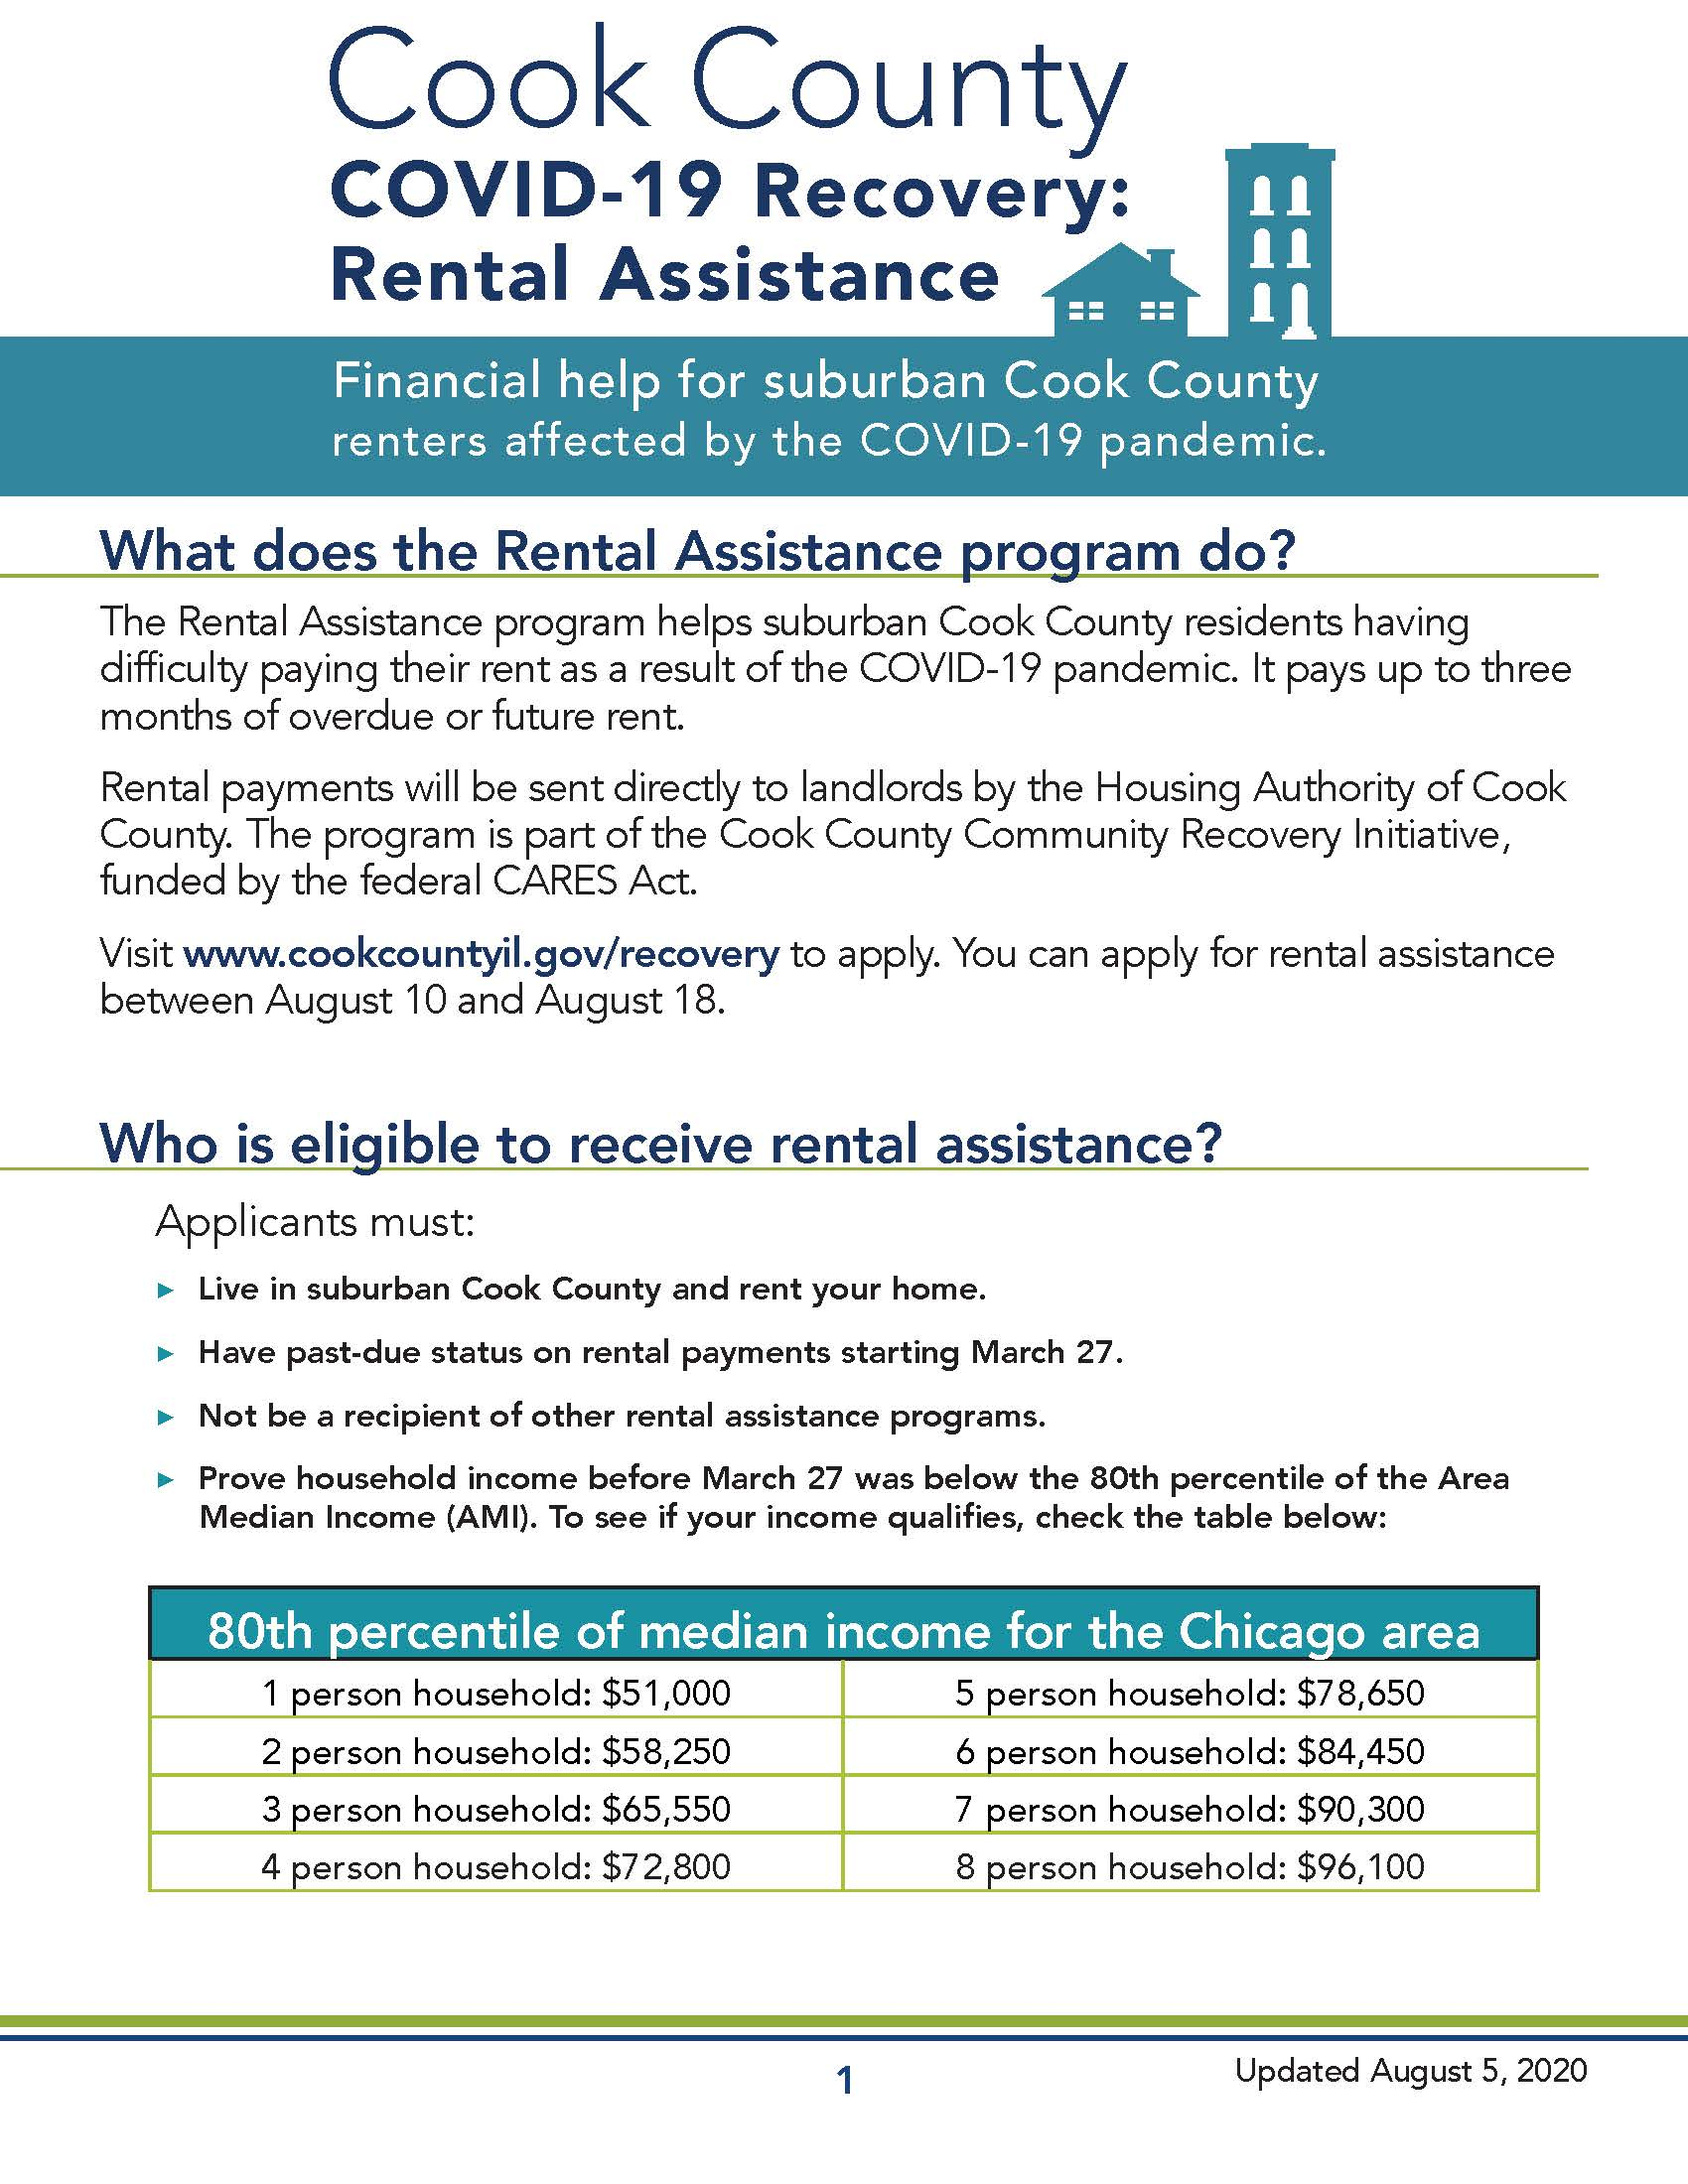 Cook County COVID-19 Recovery - Rental Assistance Overview Page 1